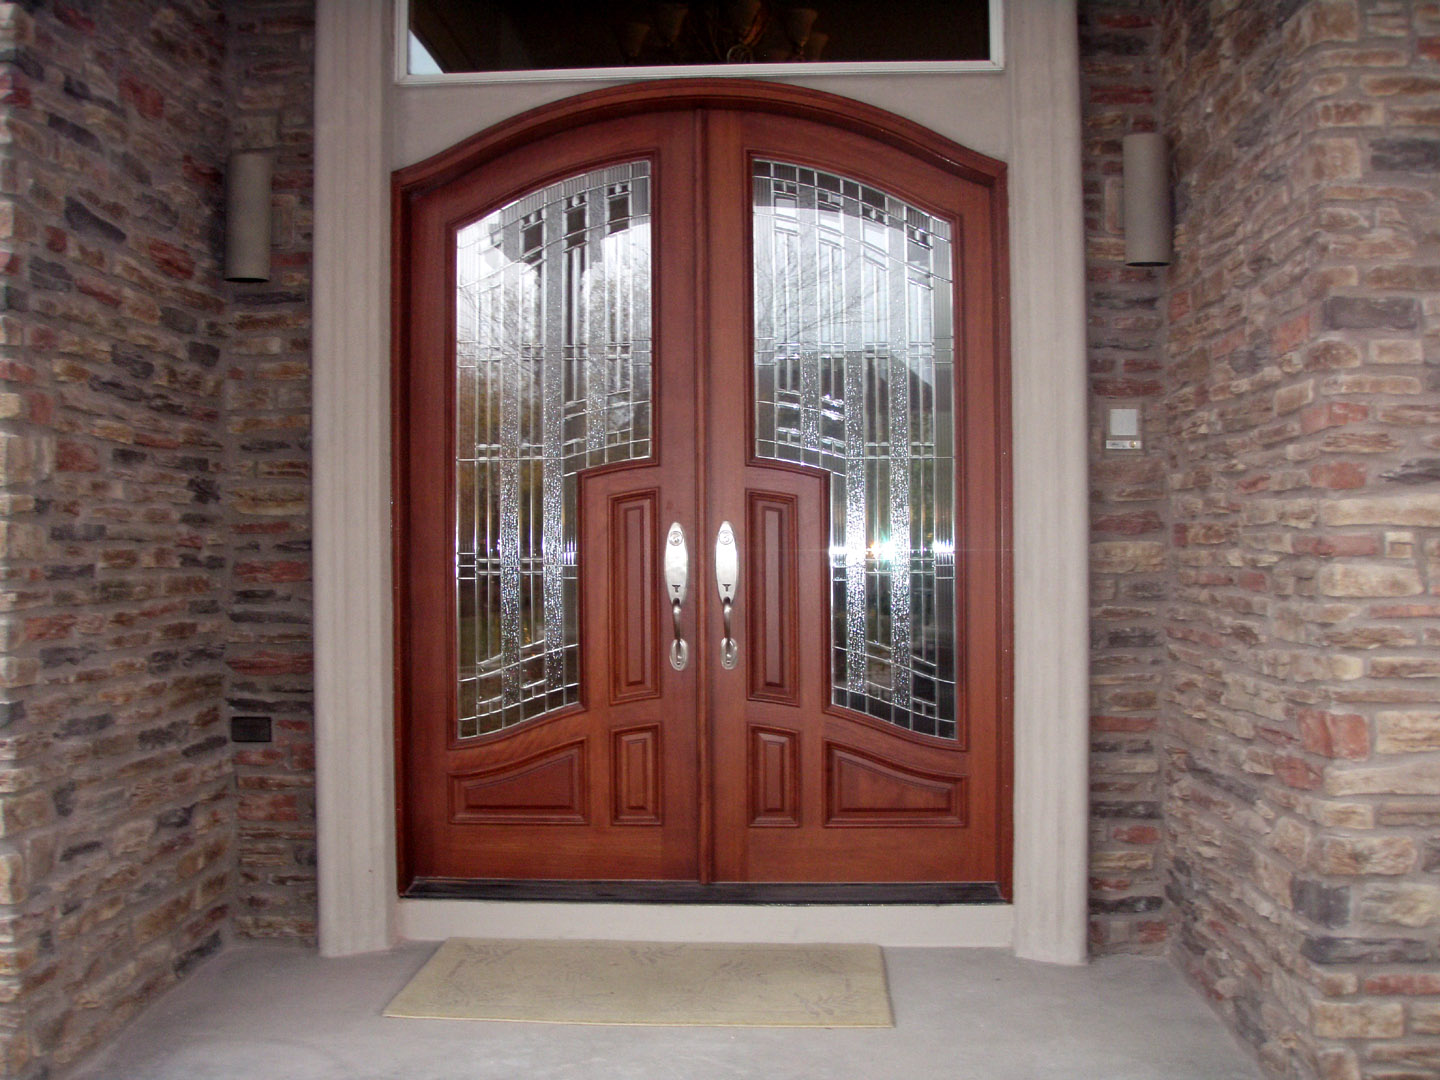 1080 #693F38 ROUND TOP DOORS – ARCHED TOP DOORS – RADIUS DOORS FOR   IN  picture/photo Arched Doors With Glass 42191440